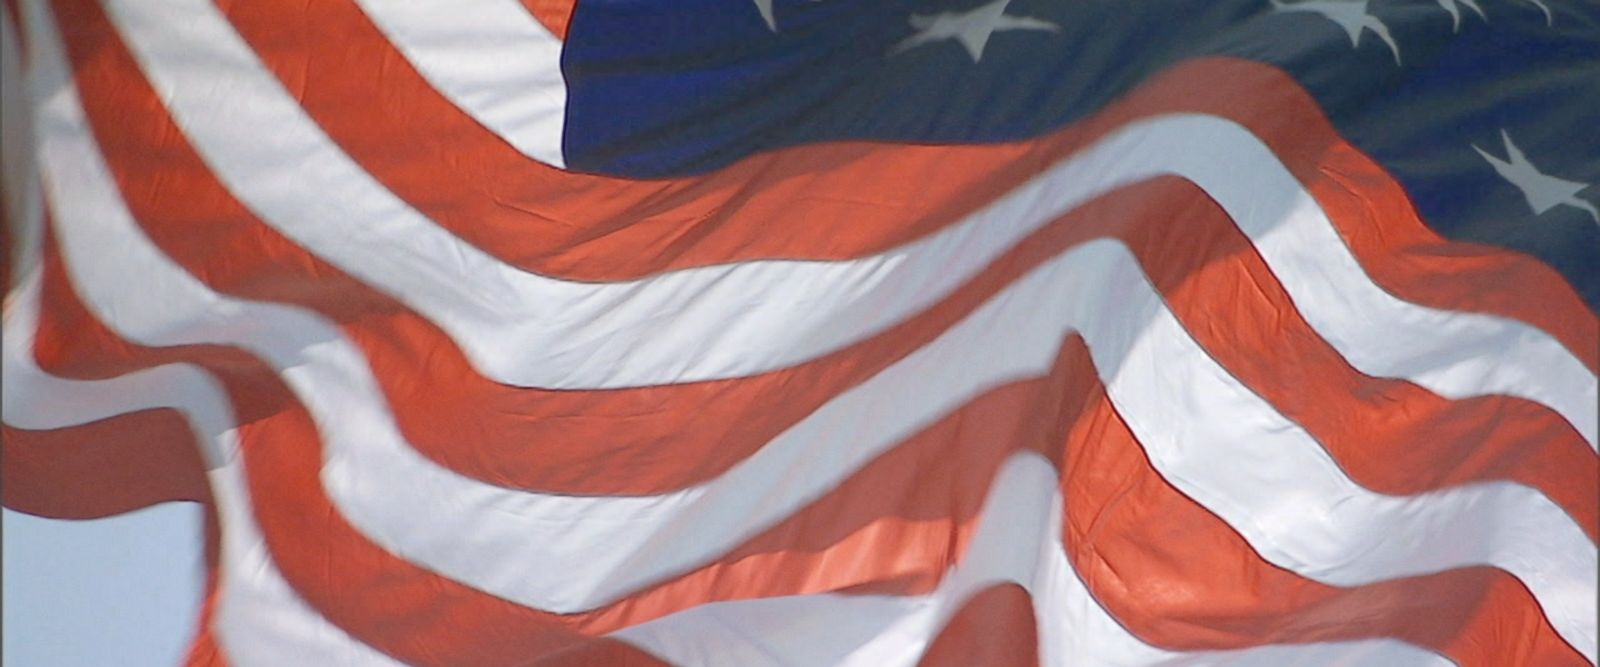 Did you know the Star Spangled Banner was set to the tune of an English drinking song?